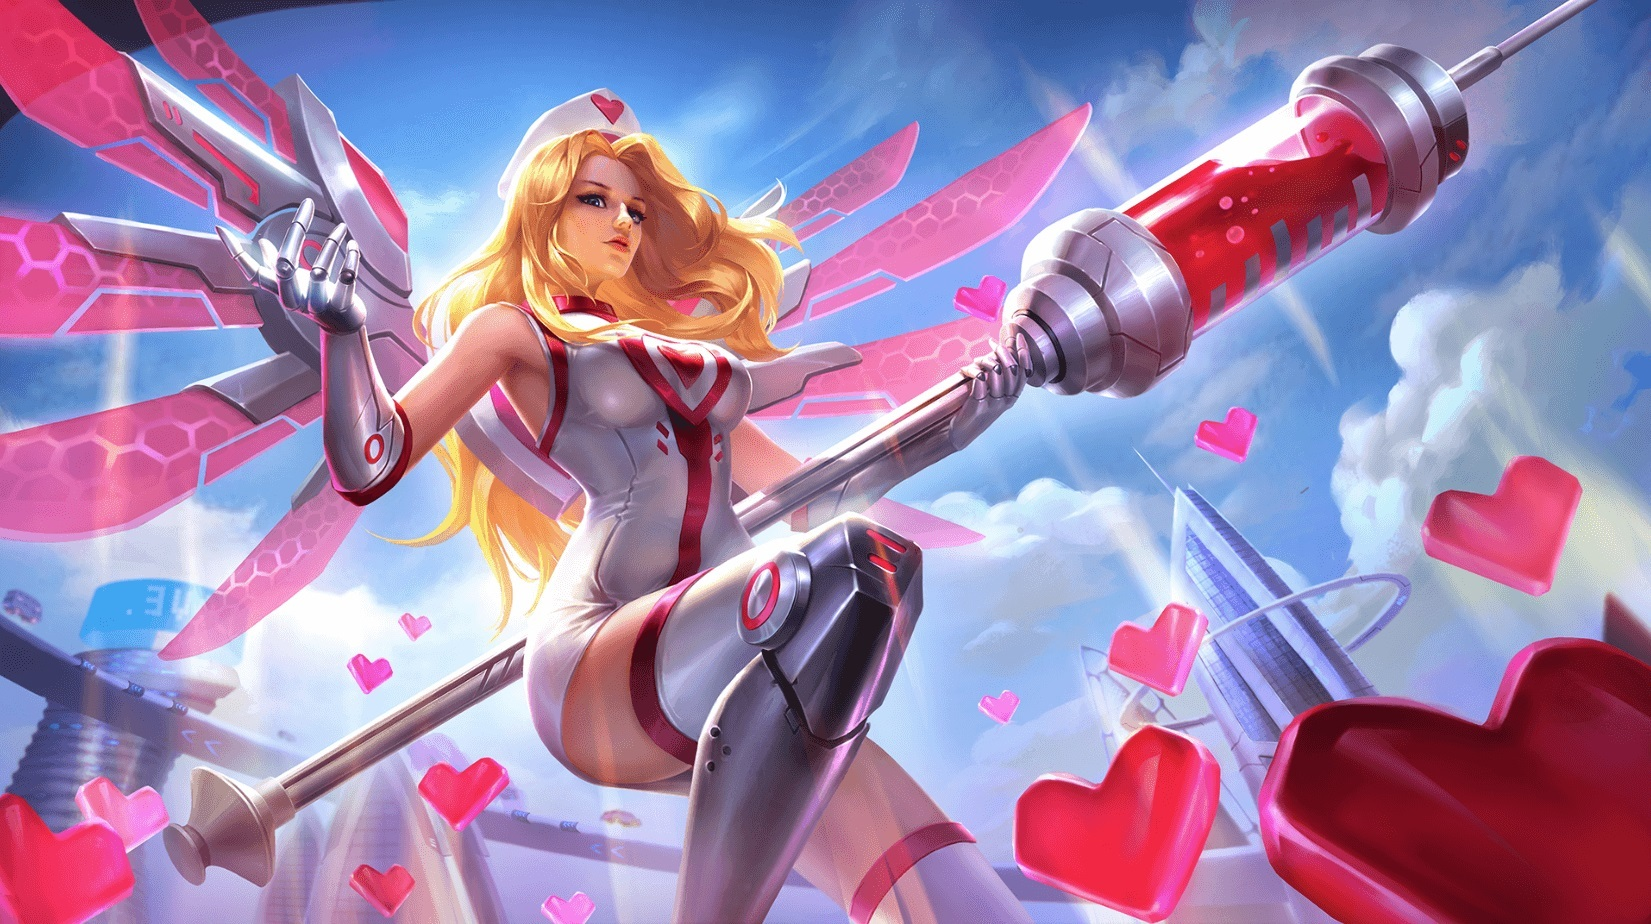 Best Meta Picks for Mobile Legends: Bang Bang to Carry Your Team/Push Ranks Quickly